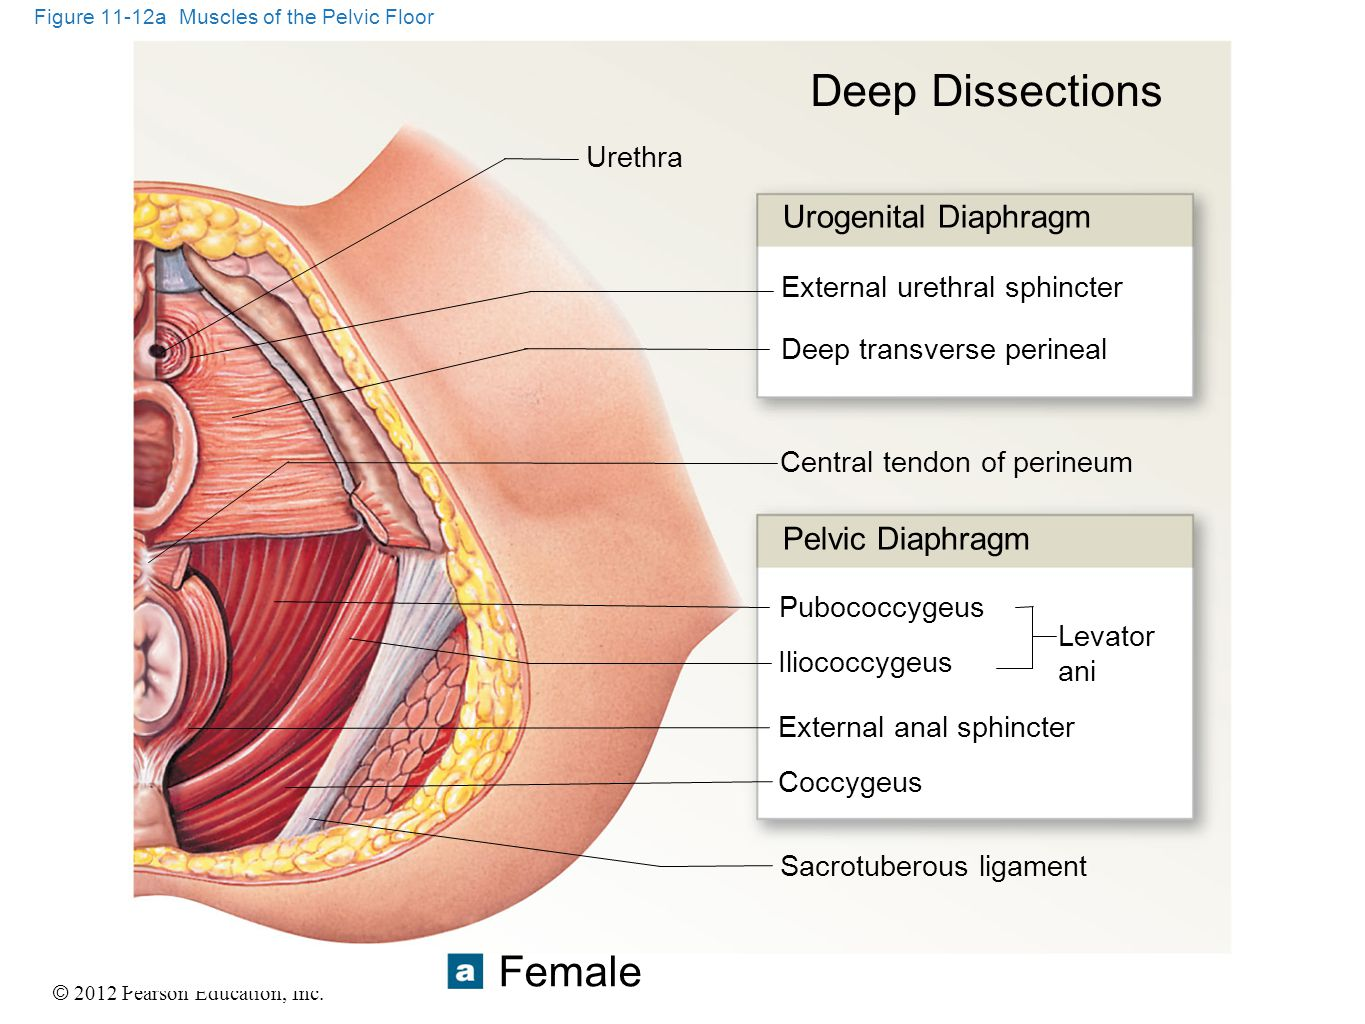 Figure 11-12a Muscles of the Pelvic Floor